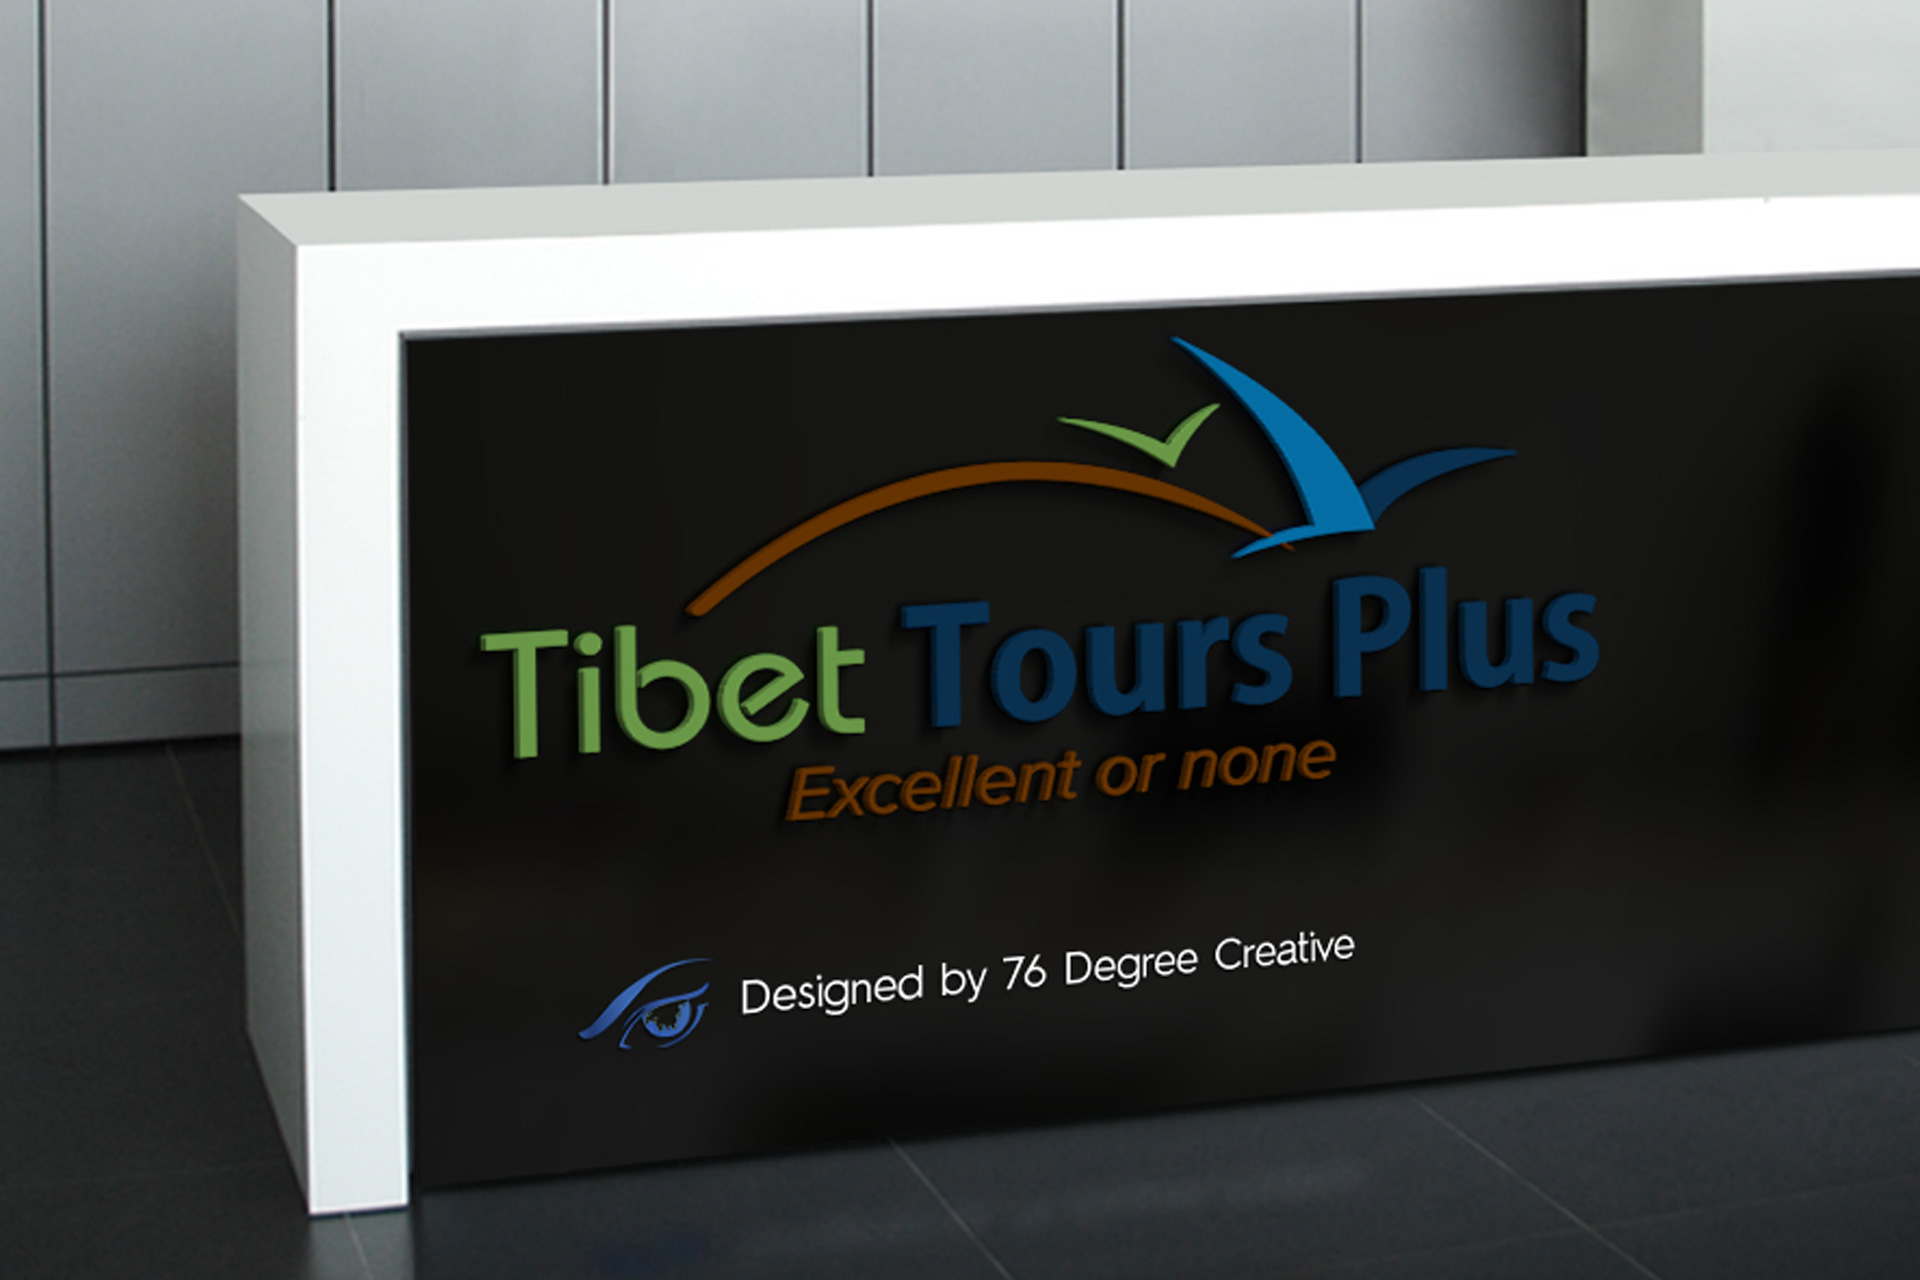 Tibet-Tours-Plus - Graphic Design Portfolio